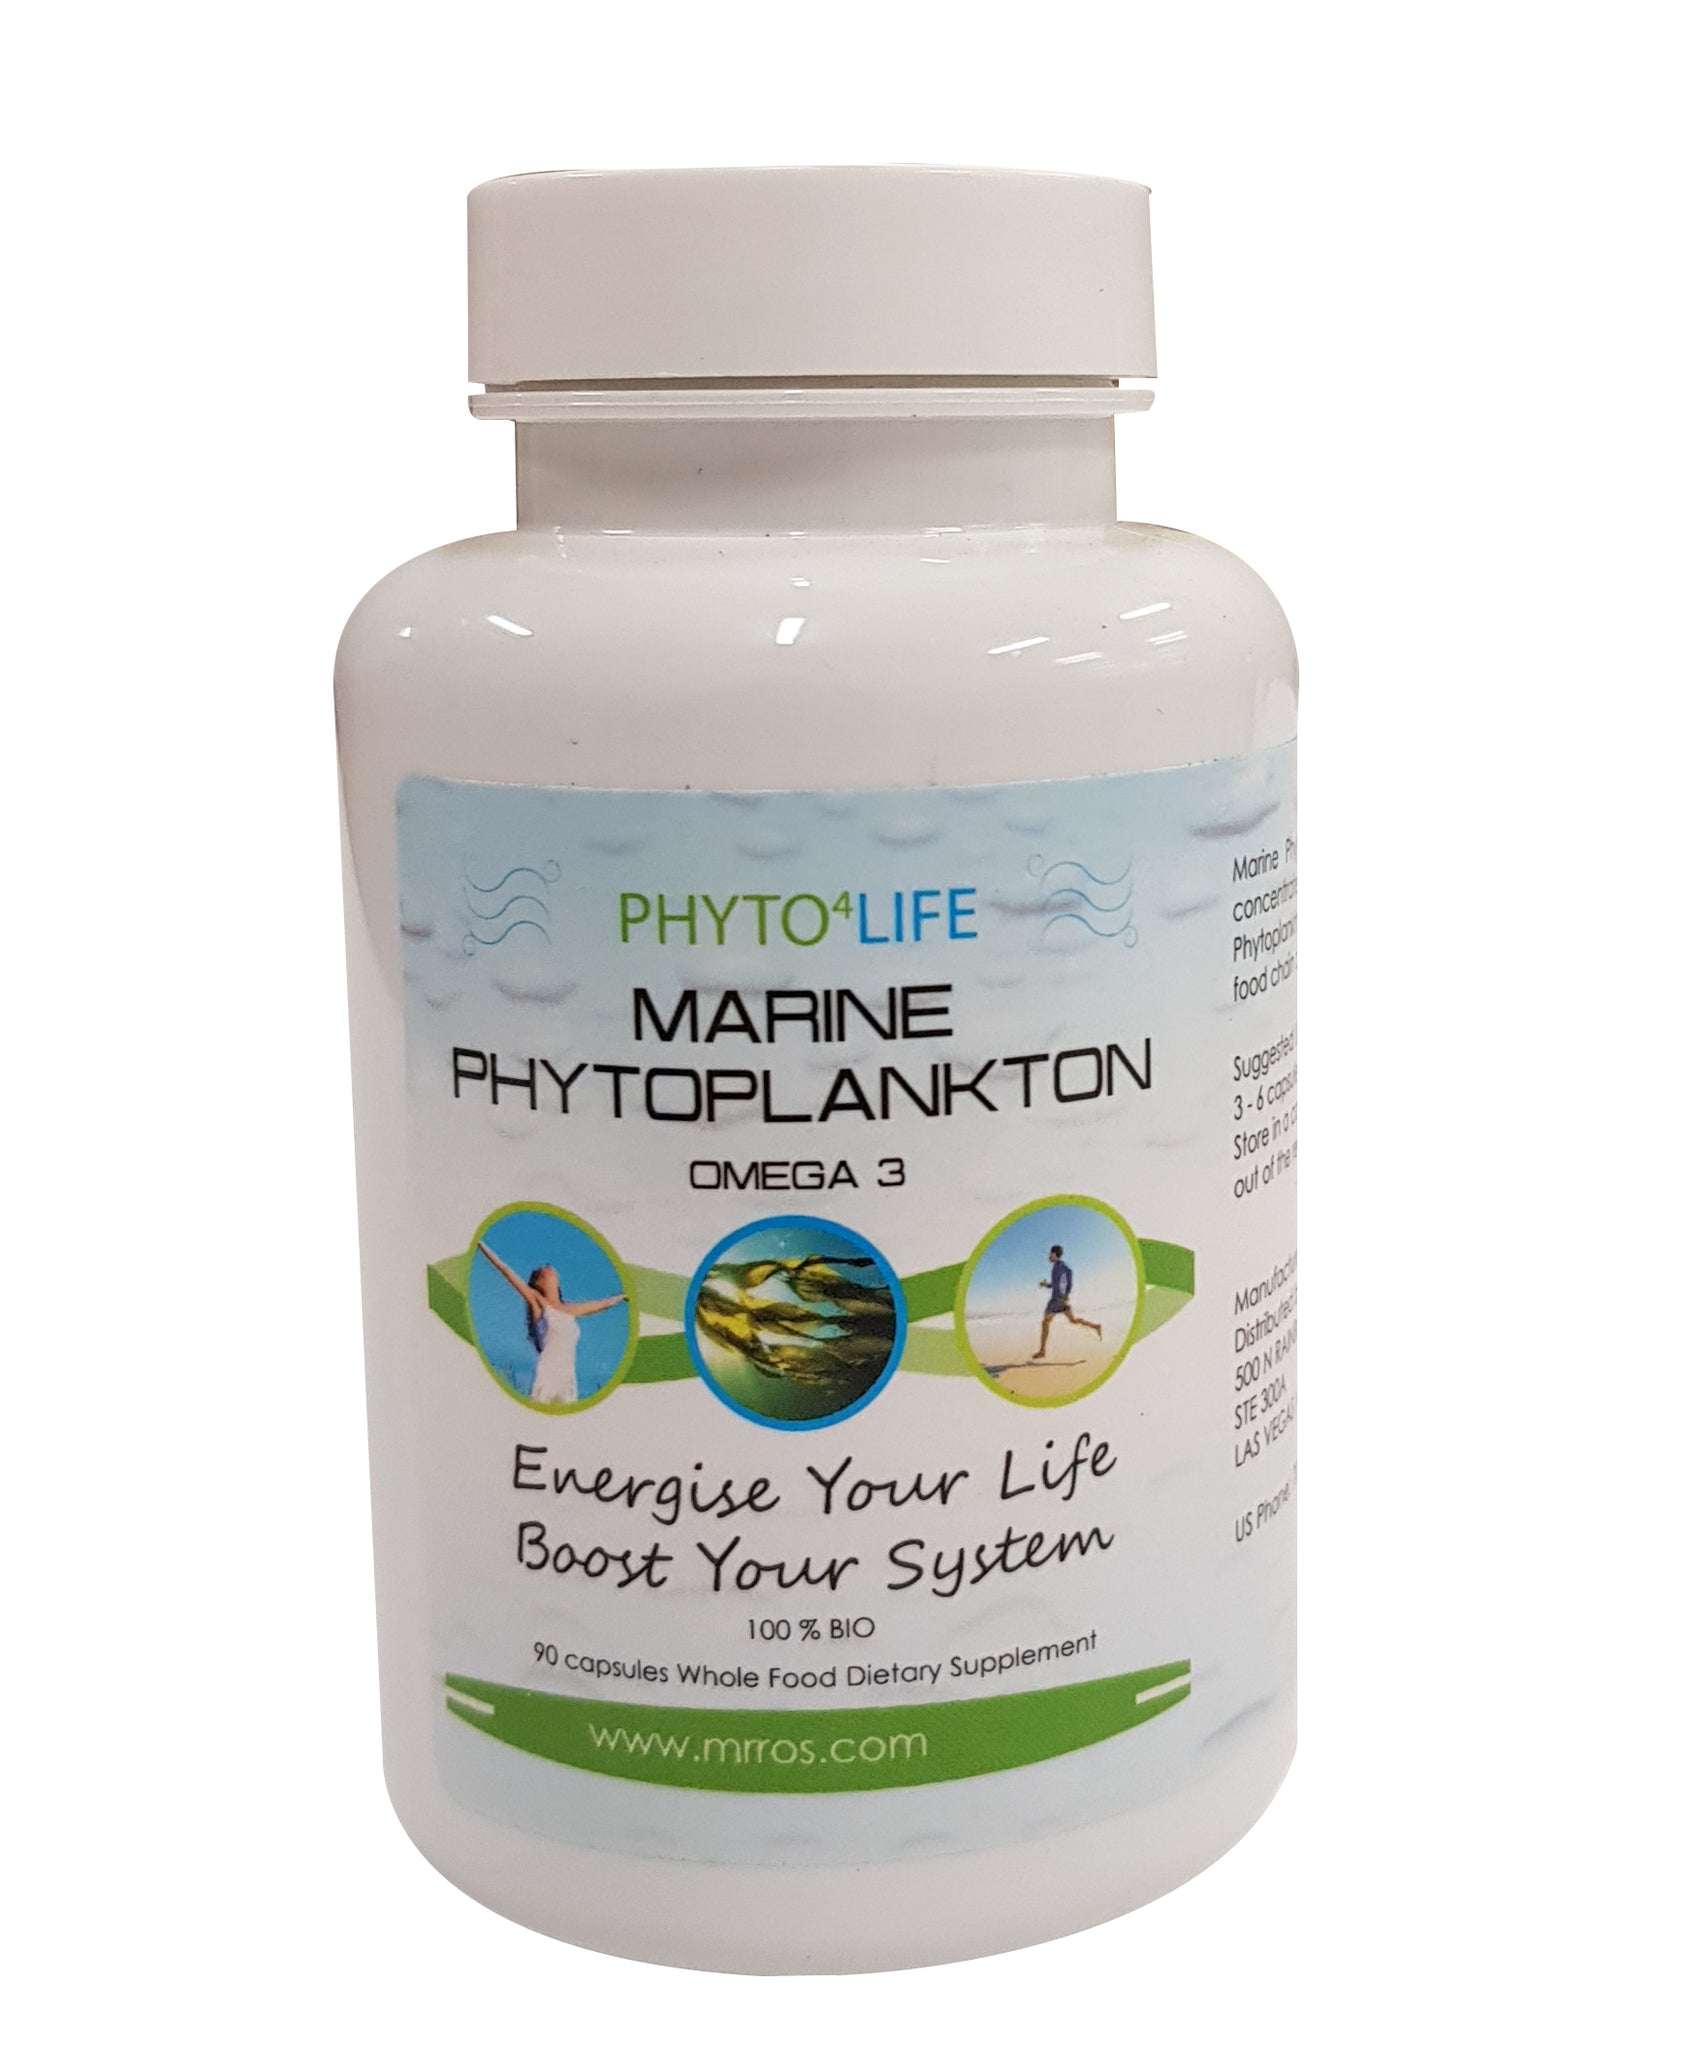 Marine Phytoplankton-All Potent Superfood-Built a Strong Immune System to Protect against any VIRUS - Mr Ros Natural Premium Superfoods